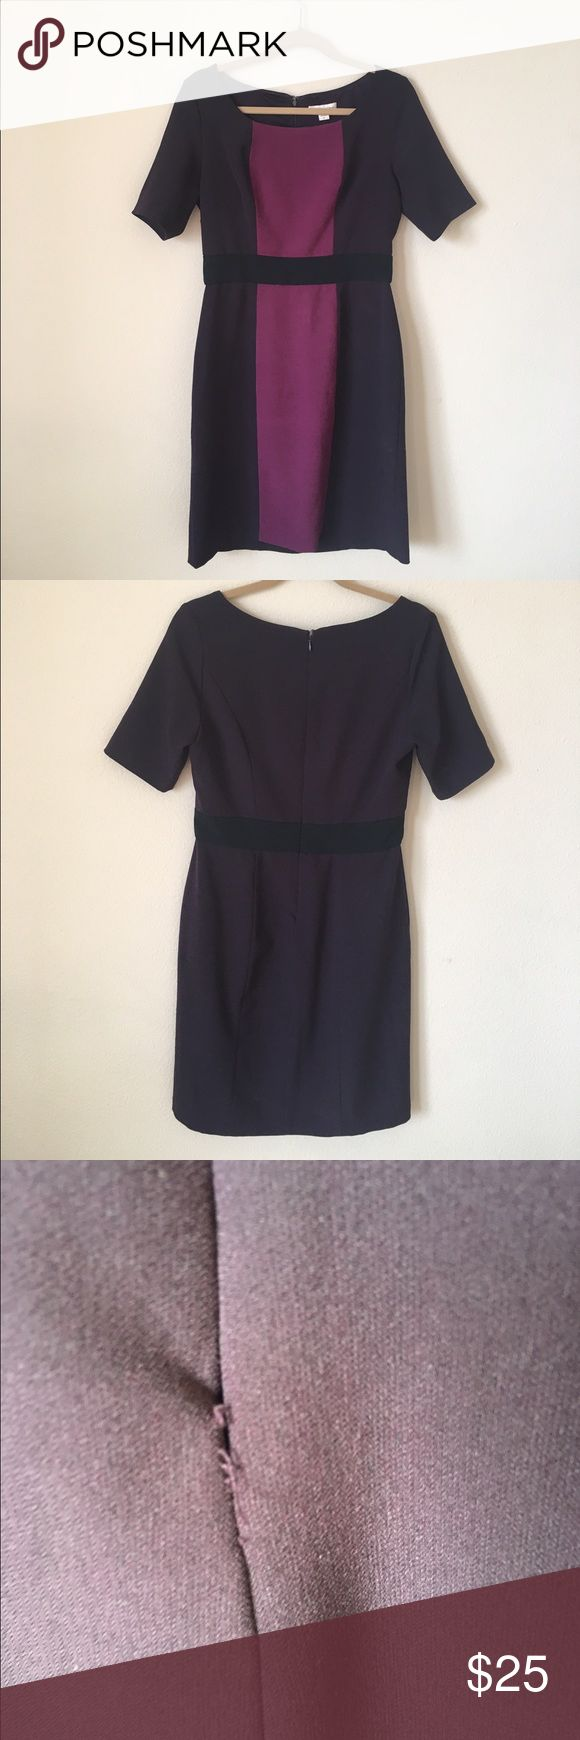 Color block purple work dress, size 8 Coldwater Creek Color block purple work dress, size 8. Stitching is coming apart at bottom hem (see photo) and at the base of the zipper (see photo). A little sewing TLC and it would be as good as new! Coldwater Creek Dresses